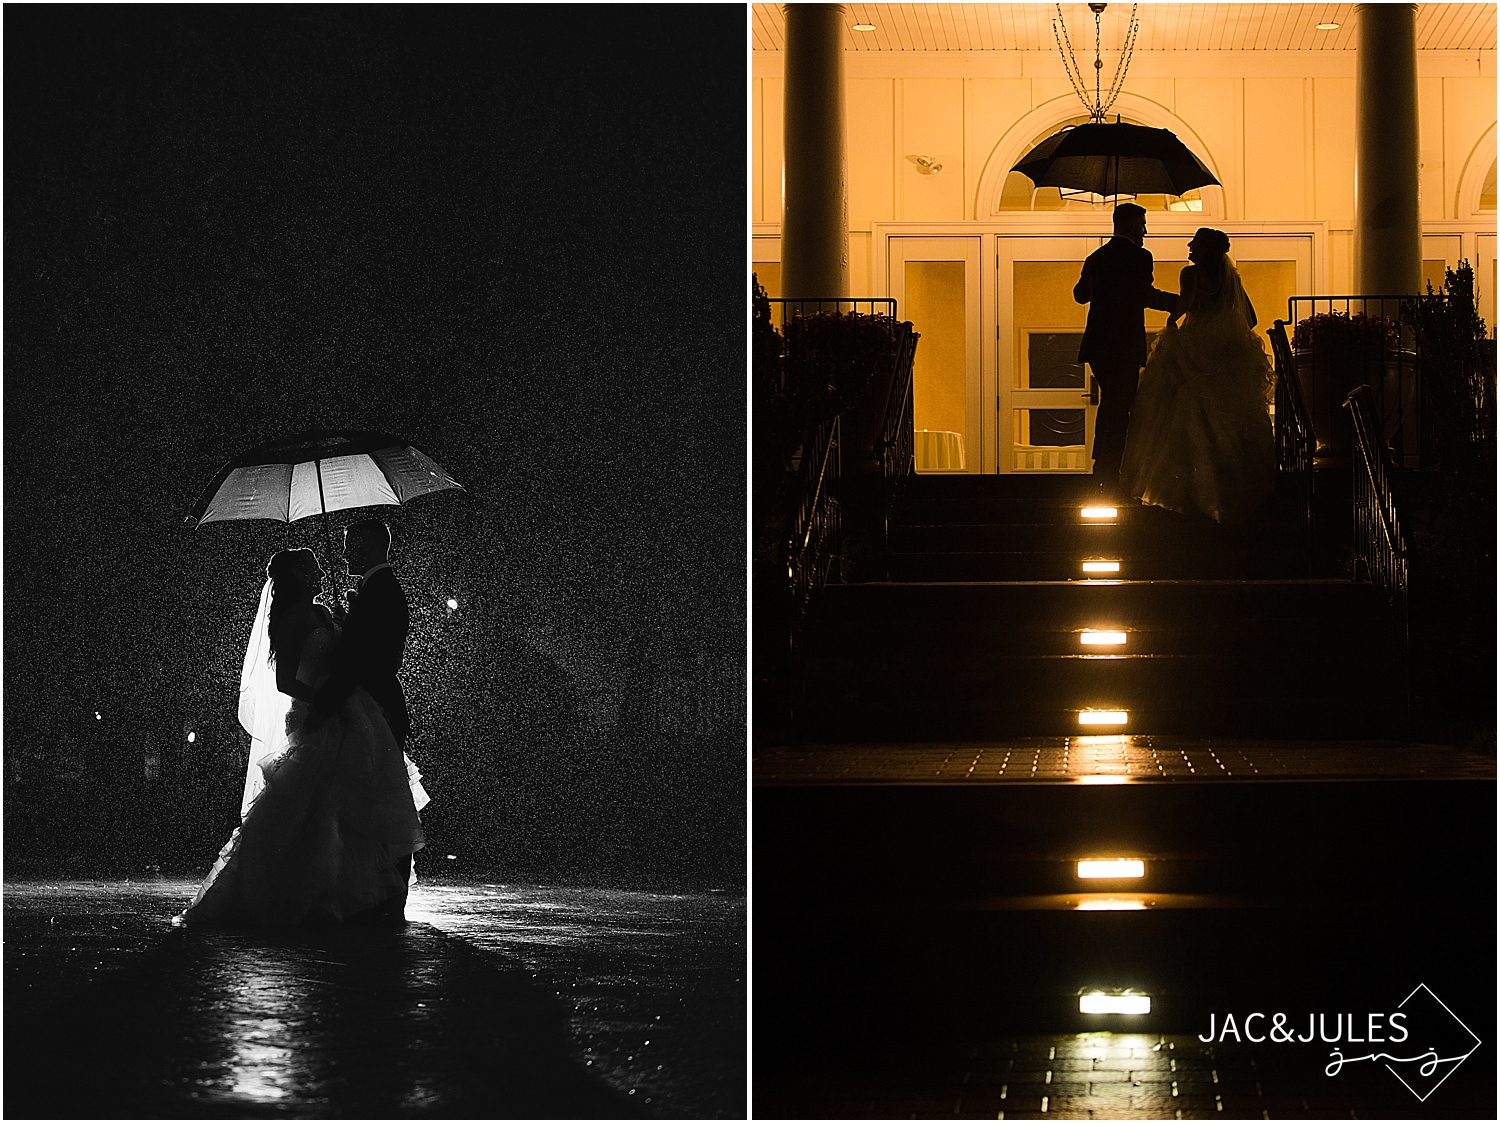 jacnjules photograph a bride and groom at night in the rain